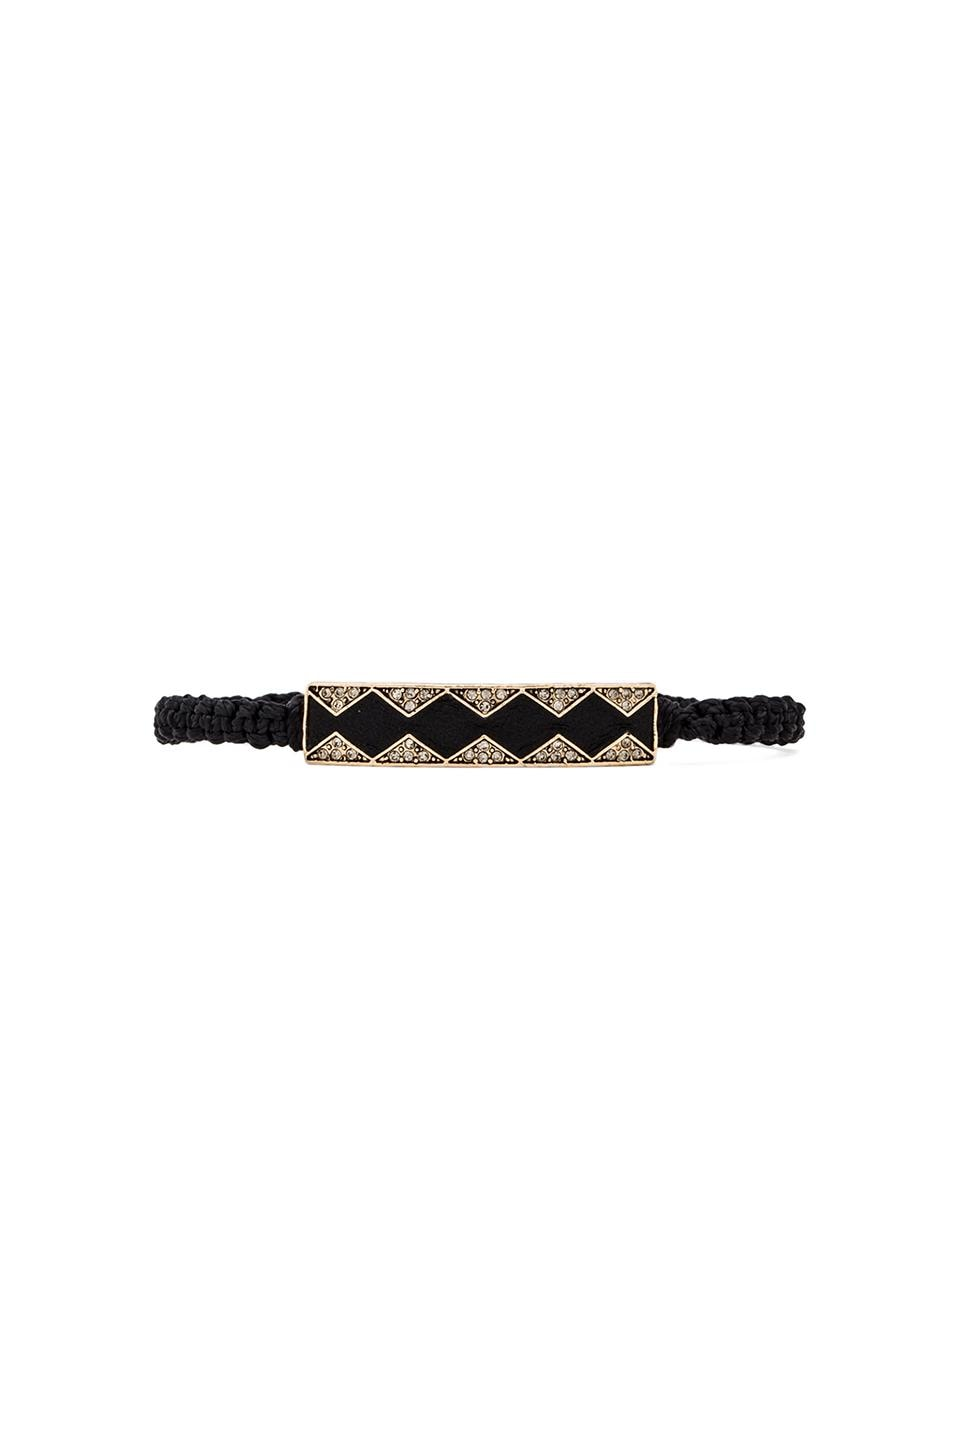 House of Harlow 1960 House of Harlow Leather Diamondhead Macrame Bracelet in Gold & Black